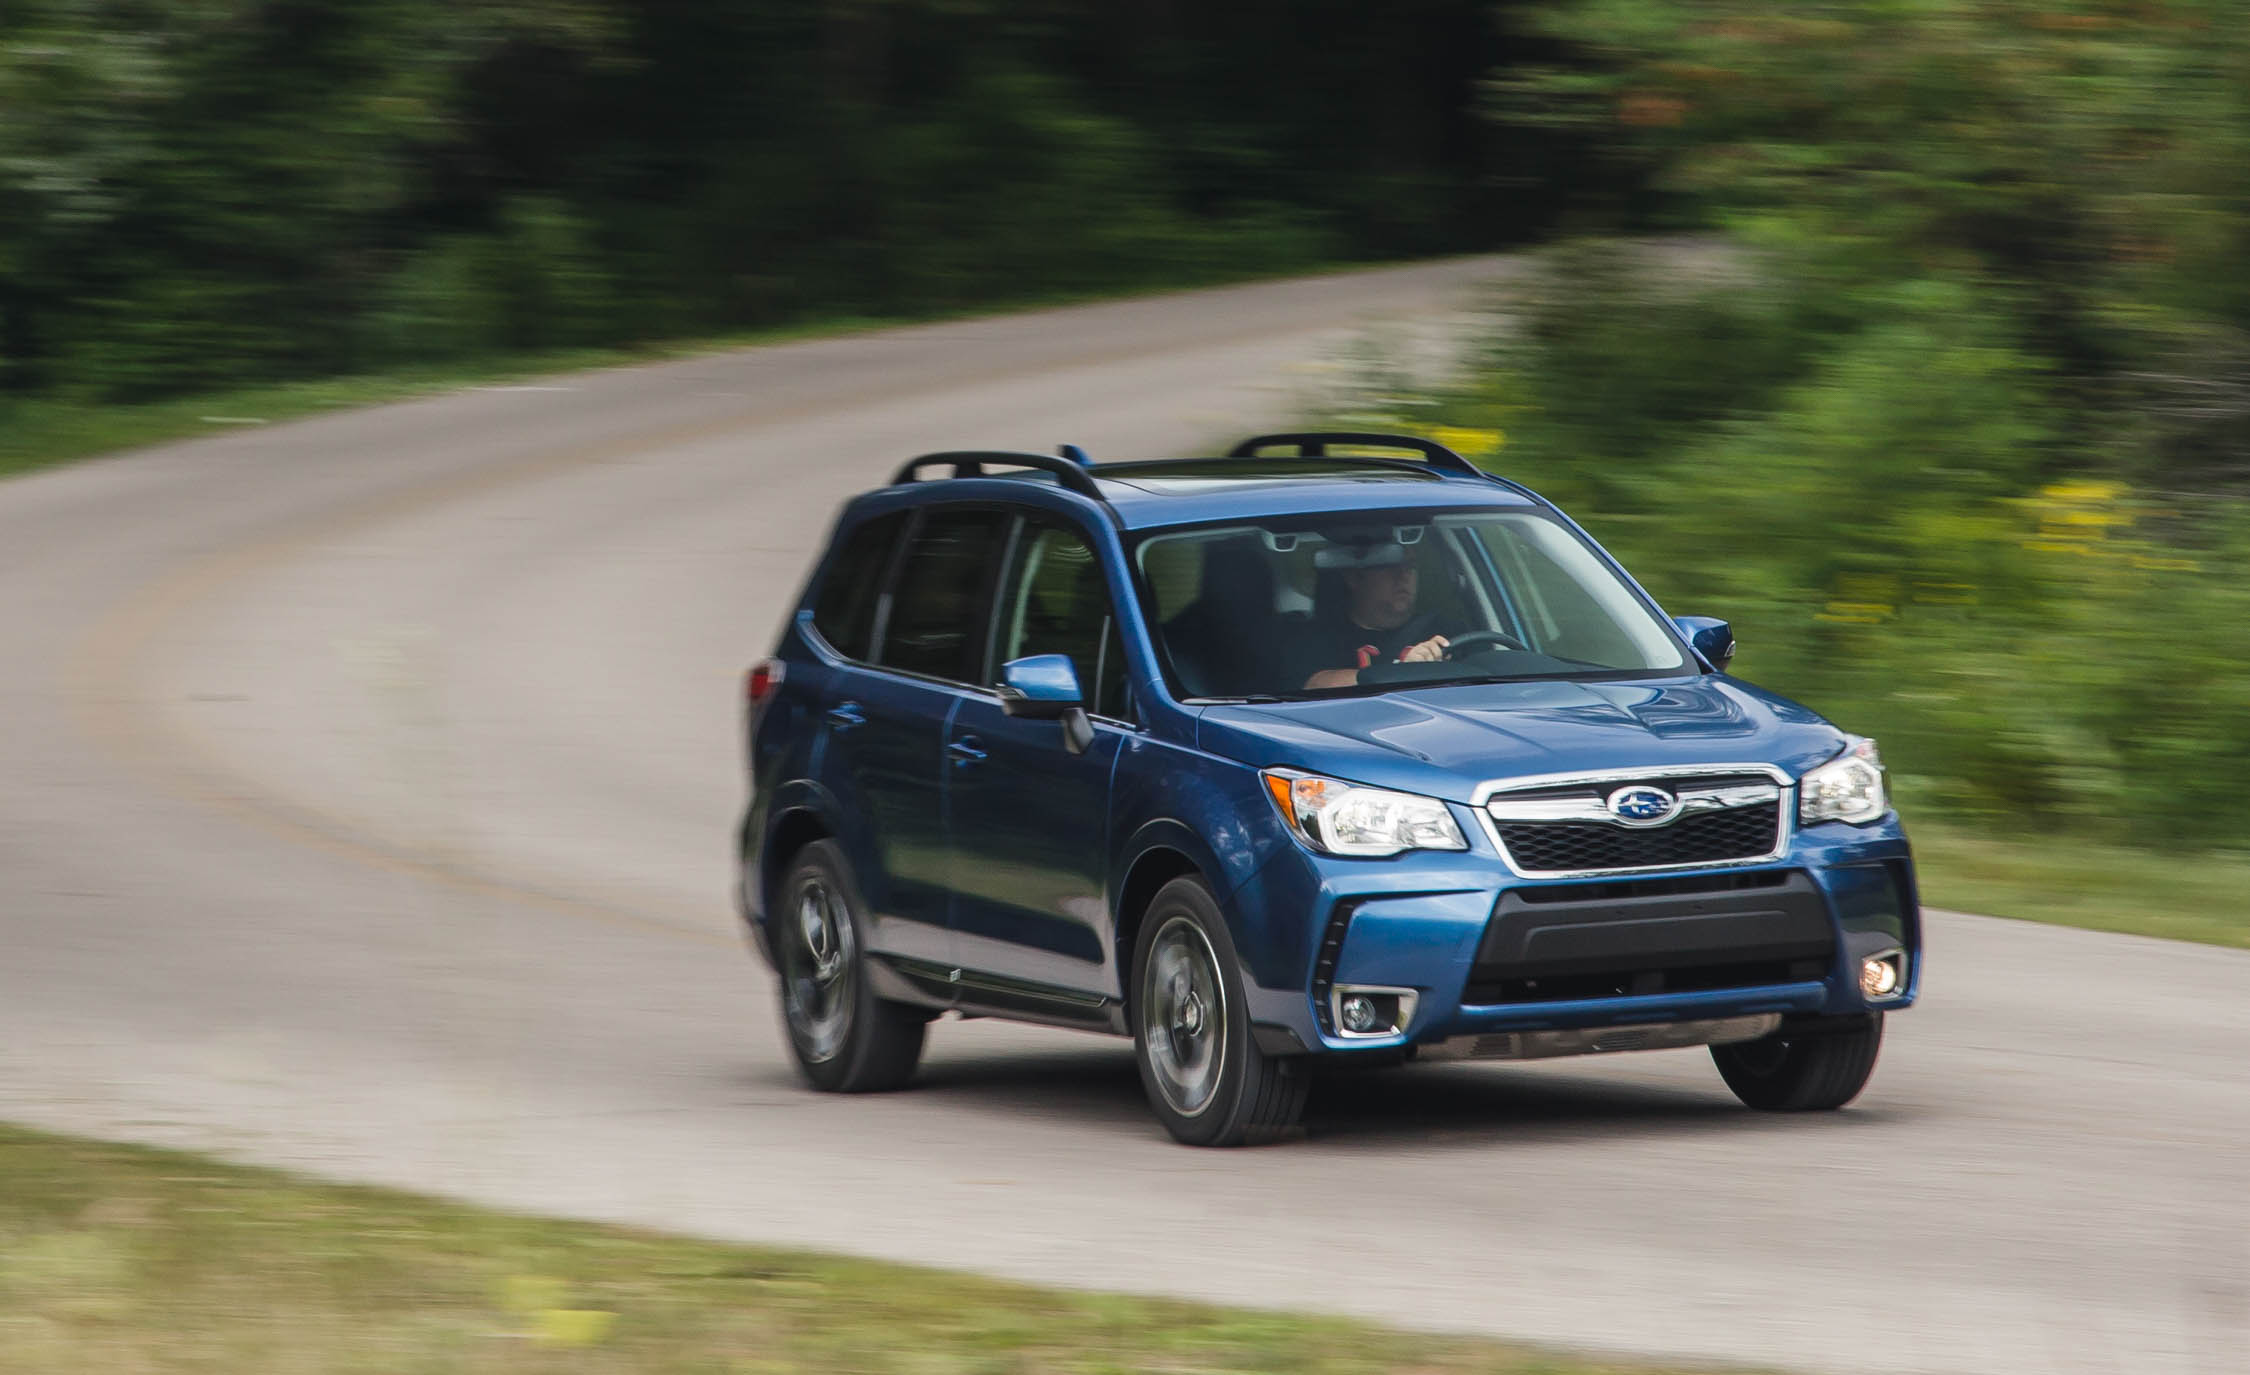 2016 Subaru Forester 2 0xt Touring (Photo 2 of 29)